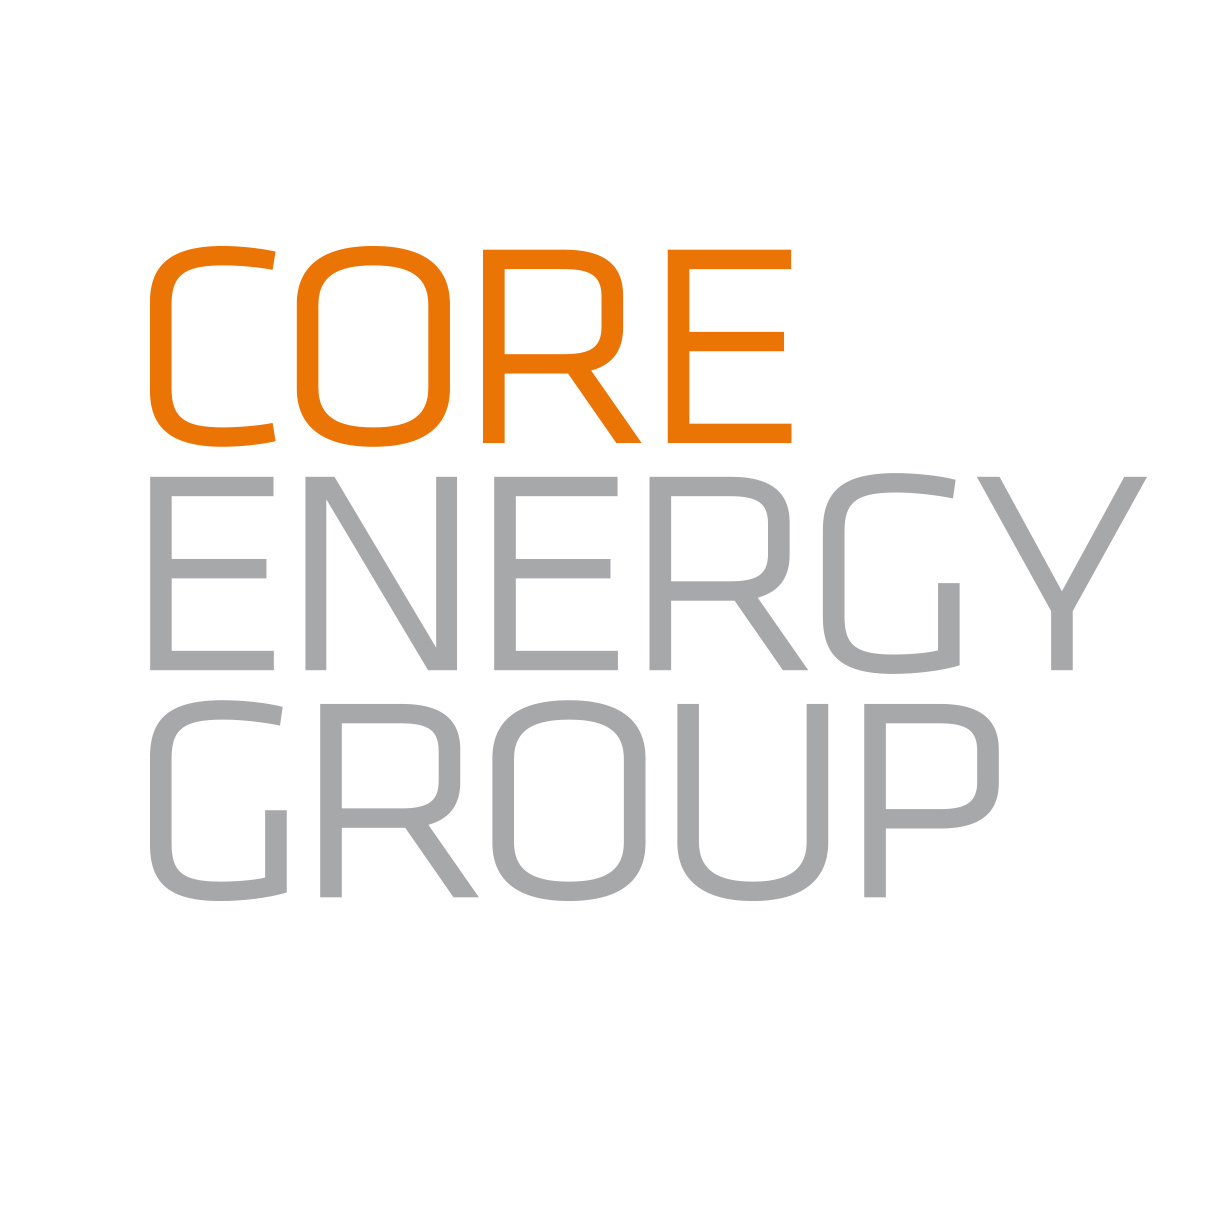 Core Energy Group